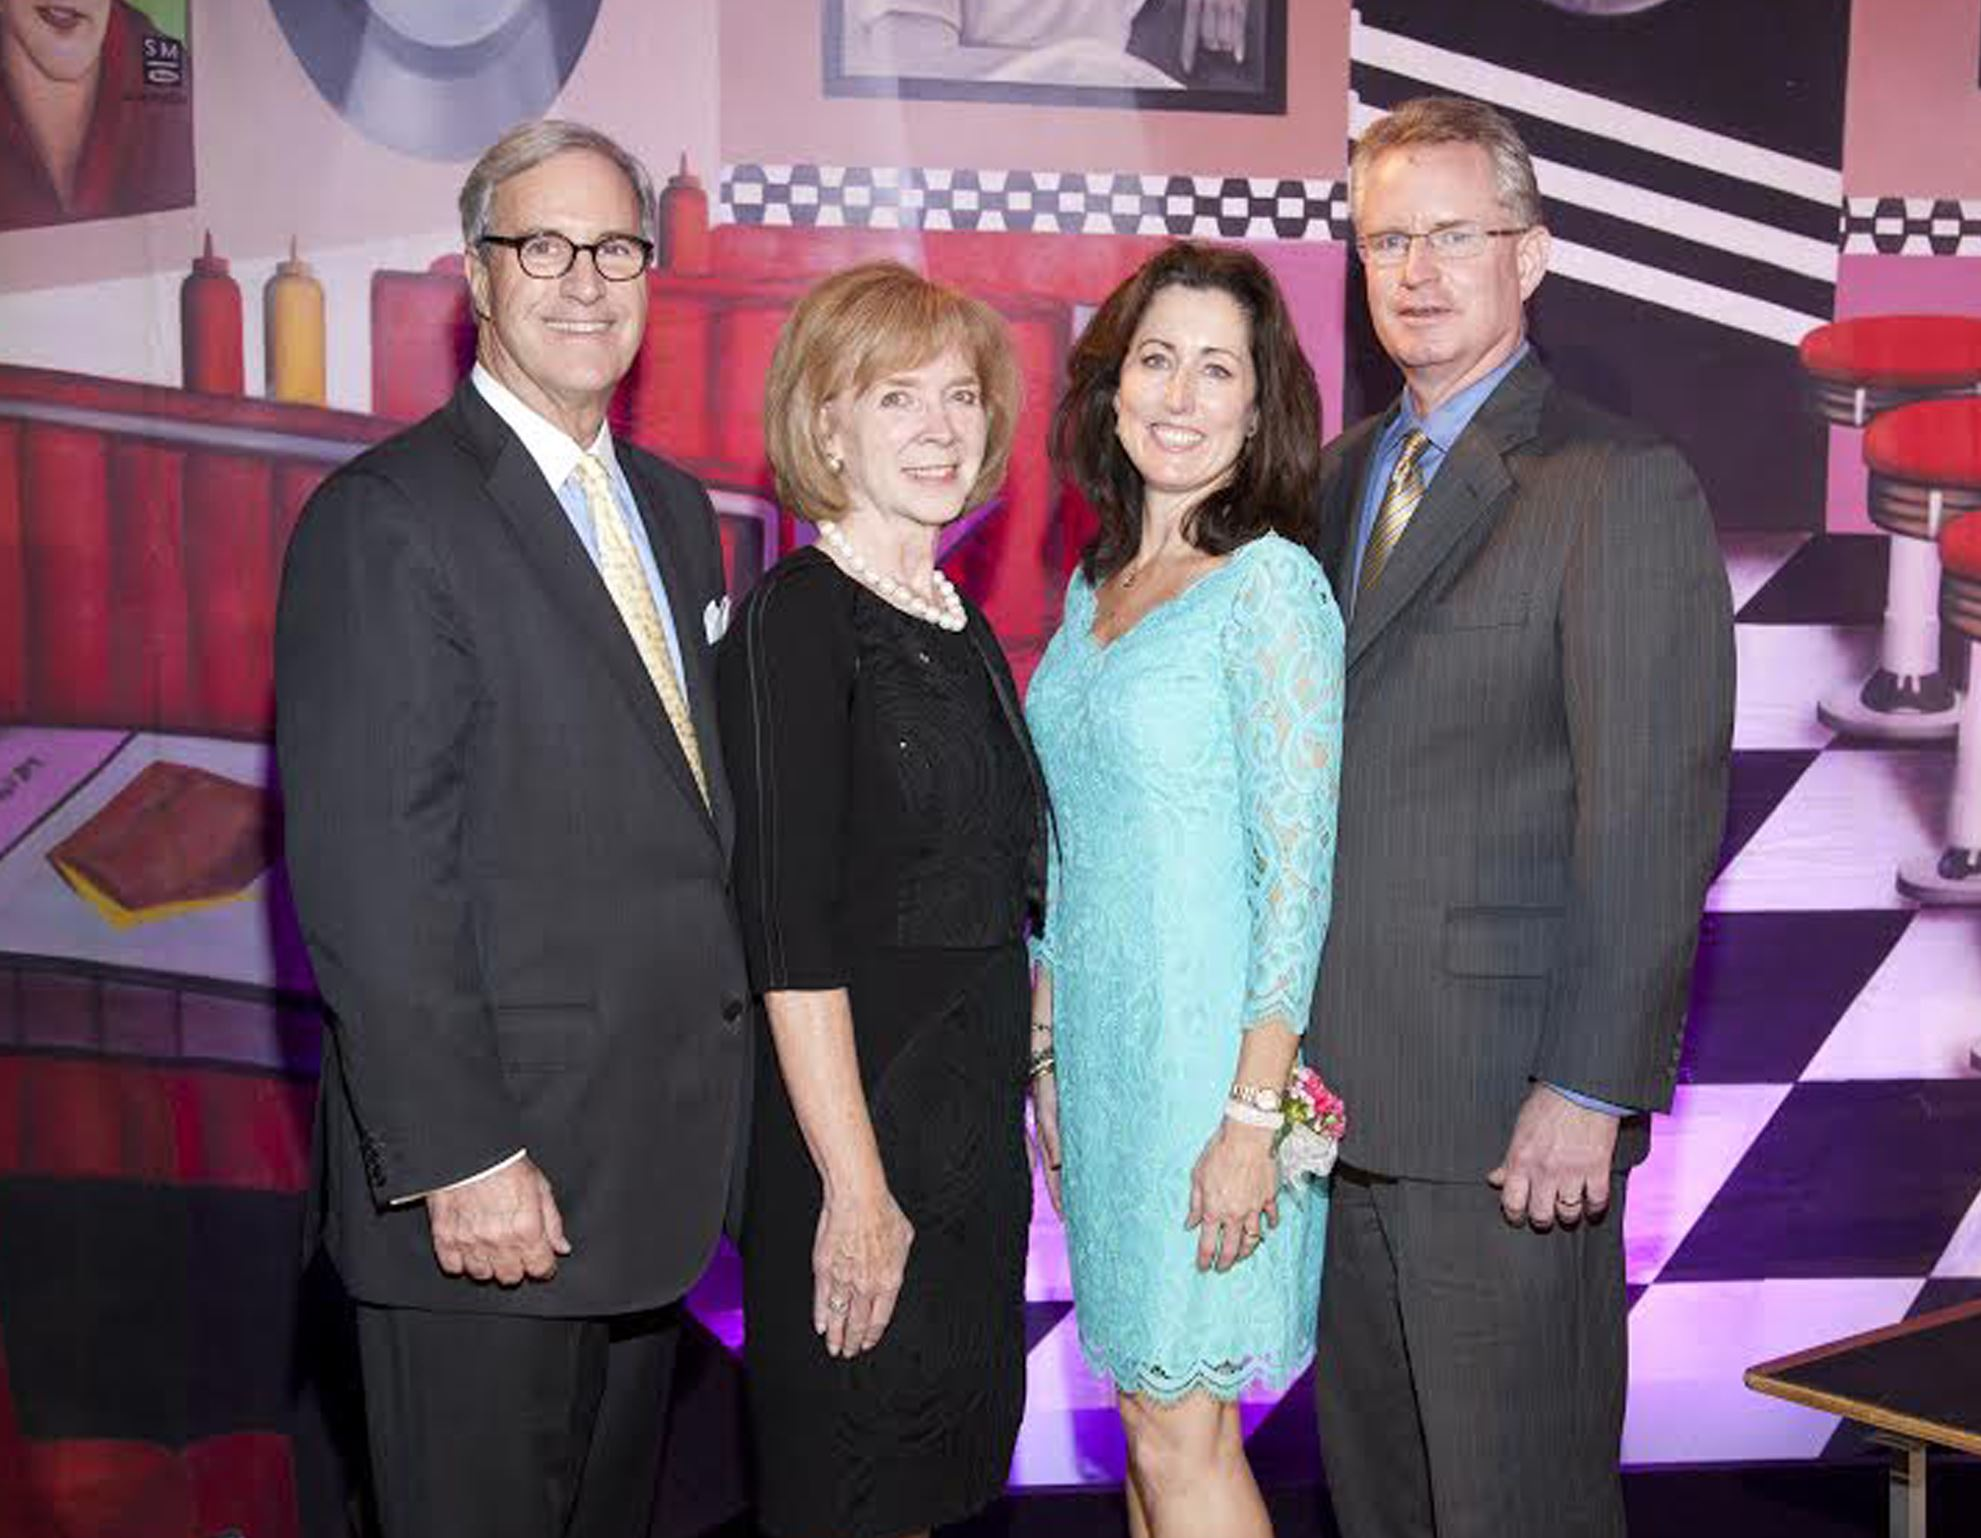 Oakland Catholic High School Gala: Honorary chairs, Ty and Katherine Freyvogel and event chairs, Kelly and Tom McDonnell.